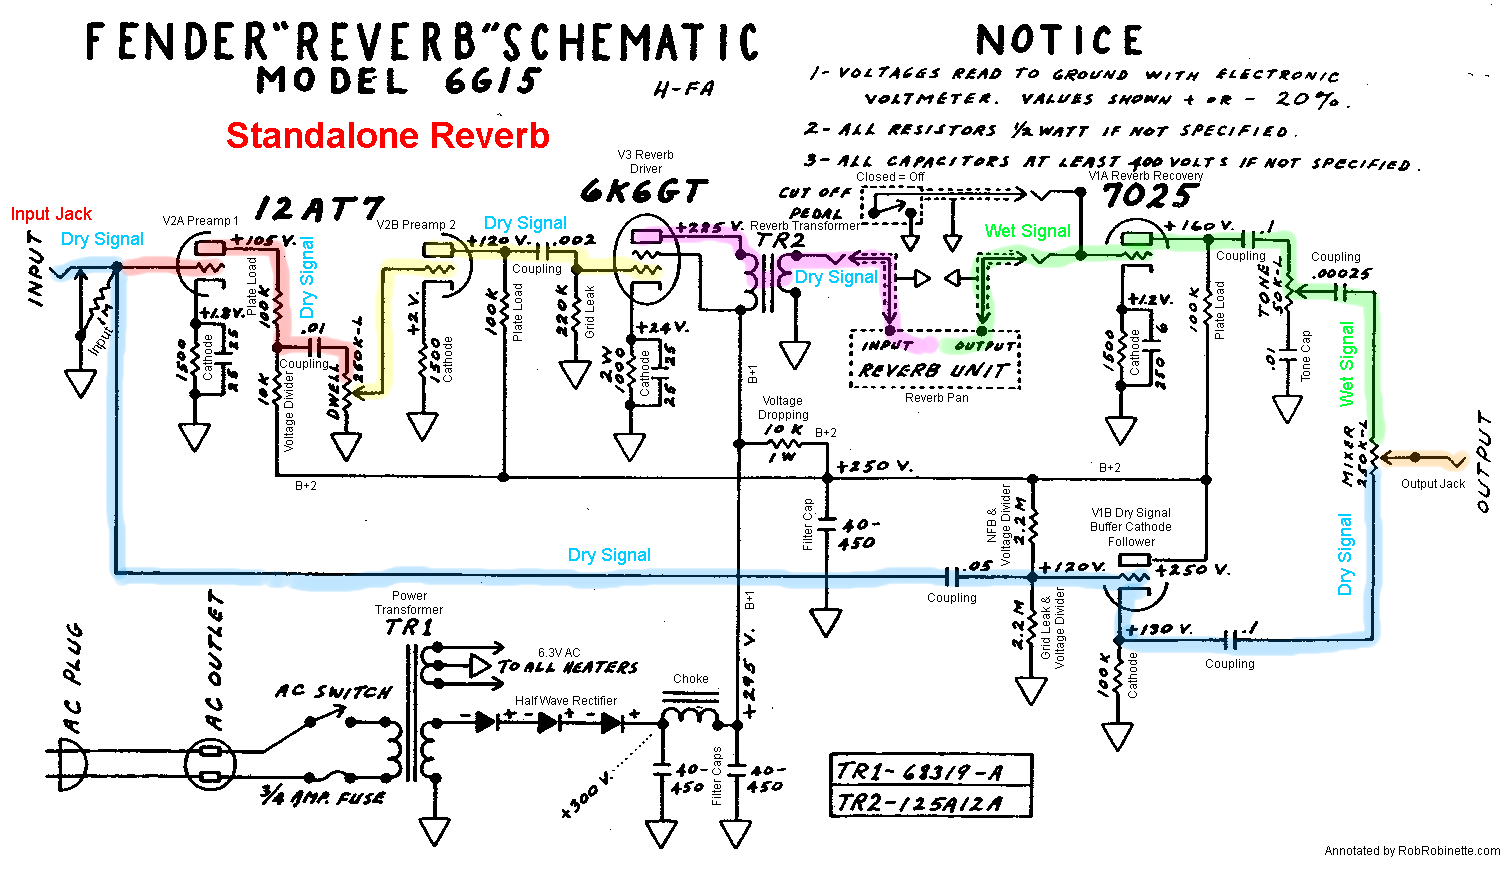 small resolution of fender 6g15 tube reverb unit schematic with signal flow by robrobinette com